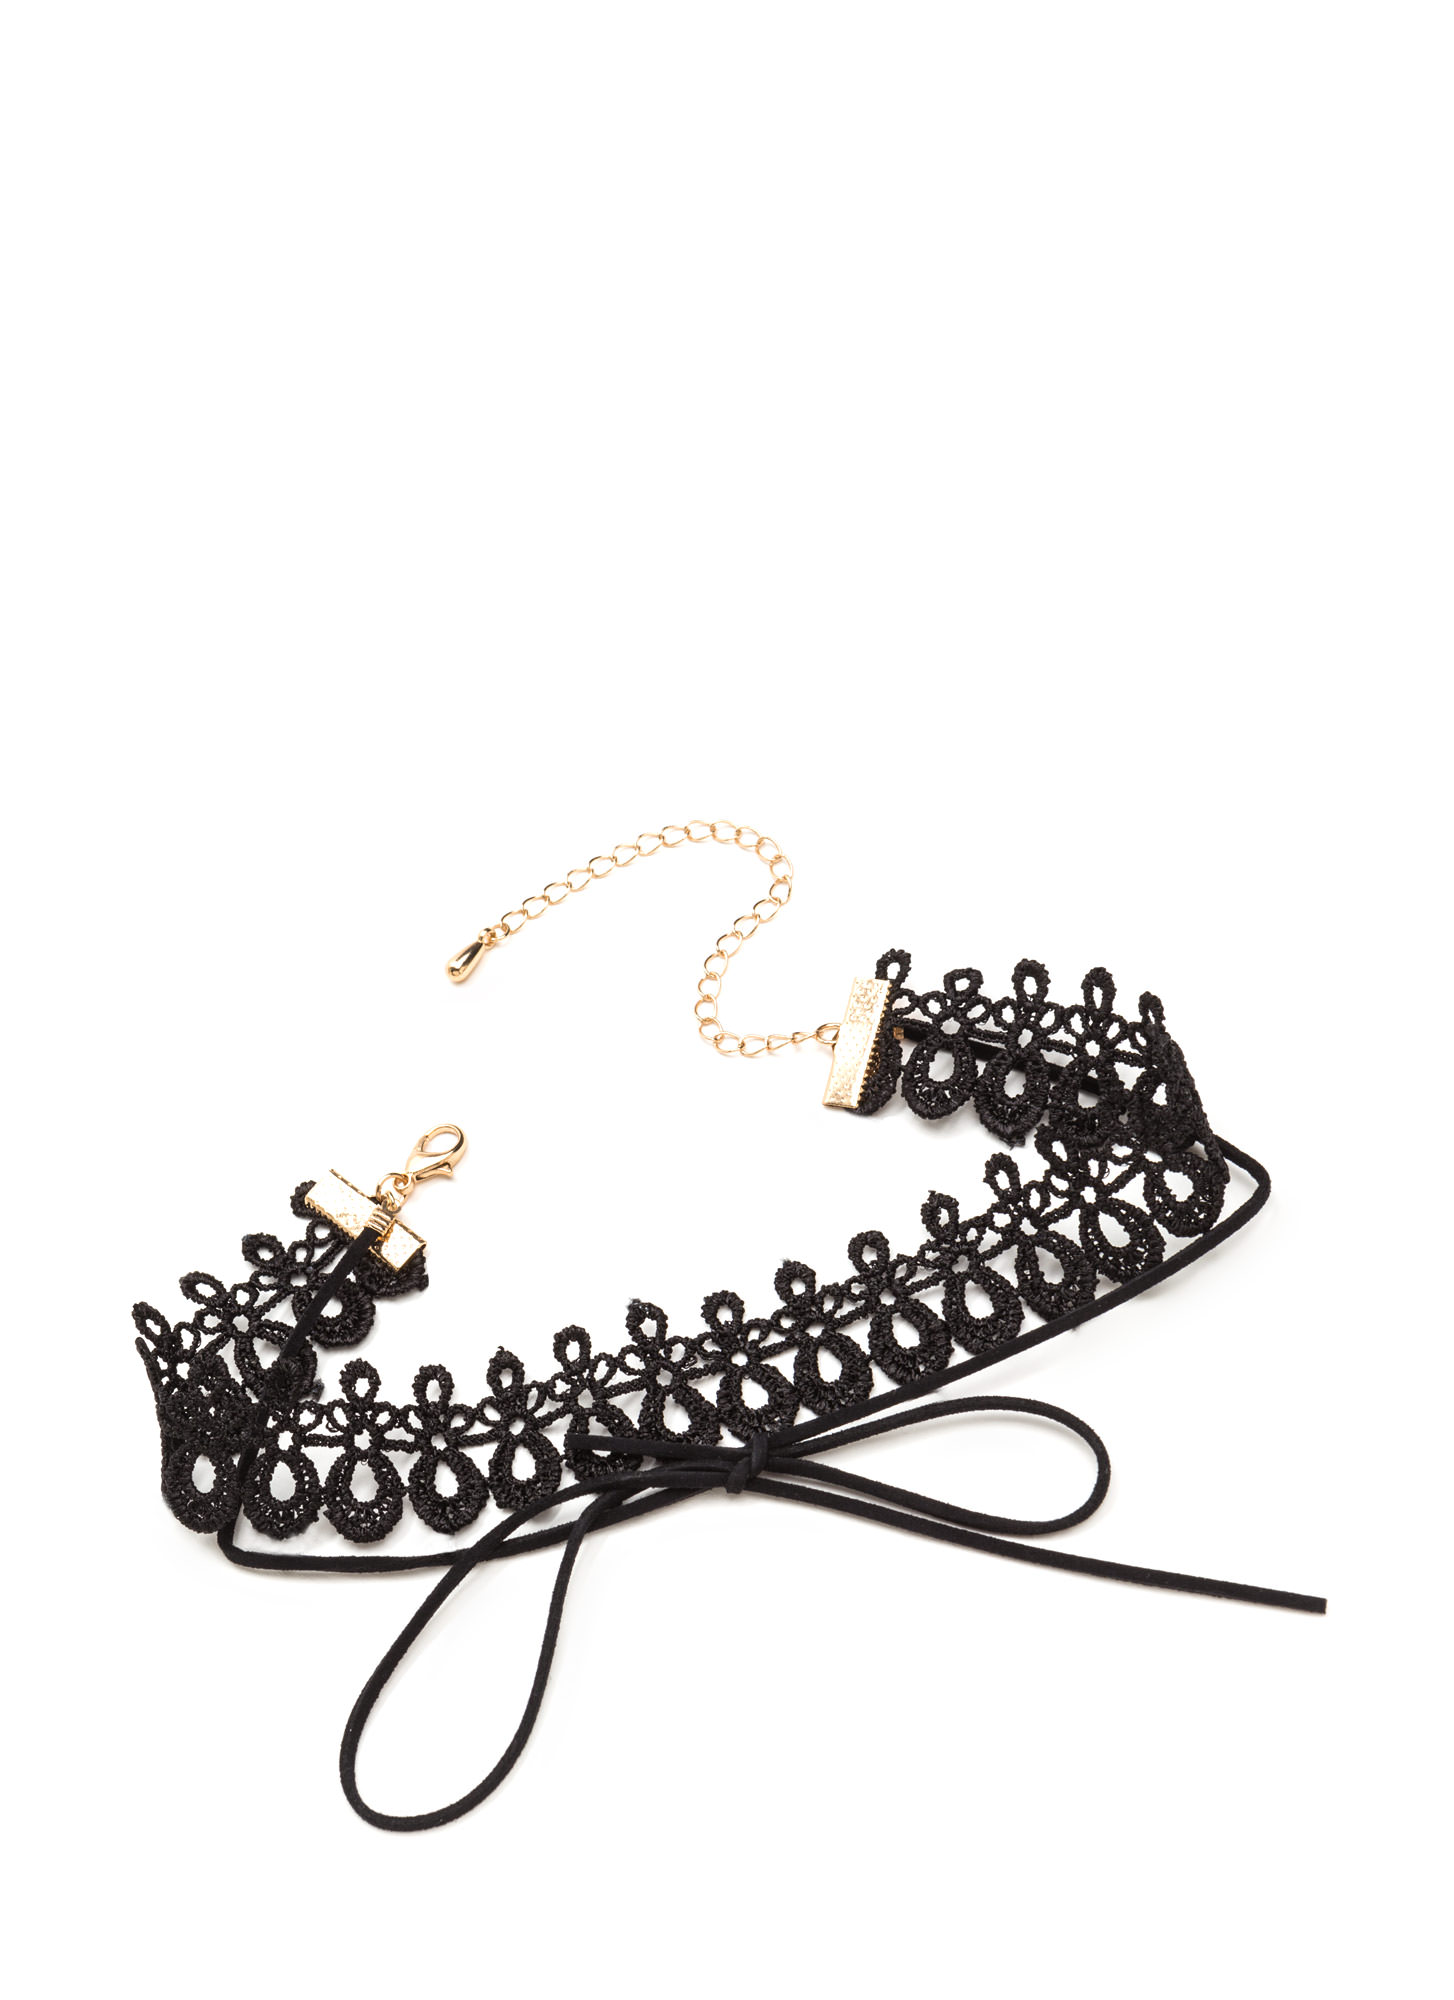 All About It Tied Cord 'N Crochet Choker BLACK